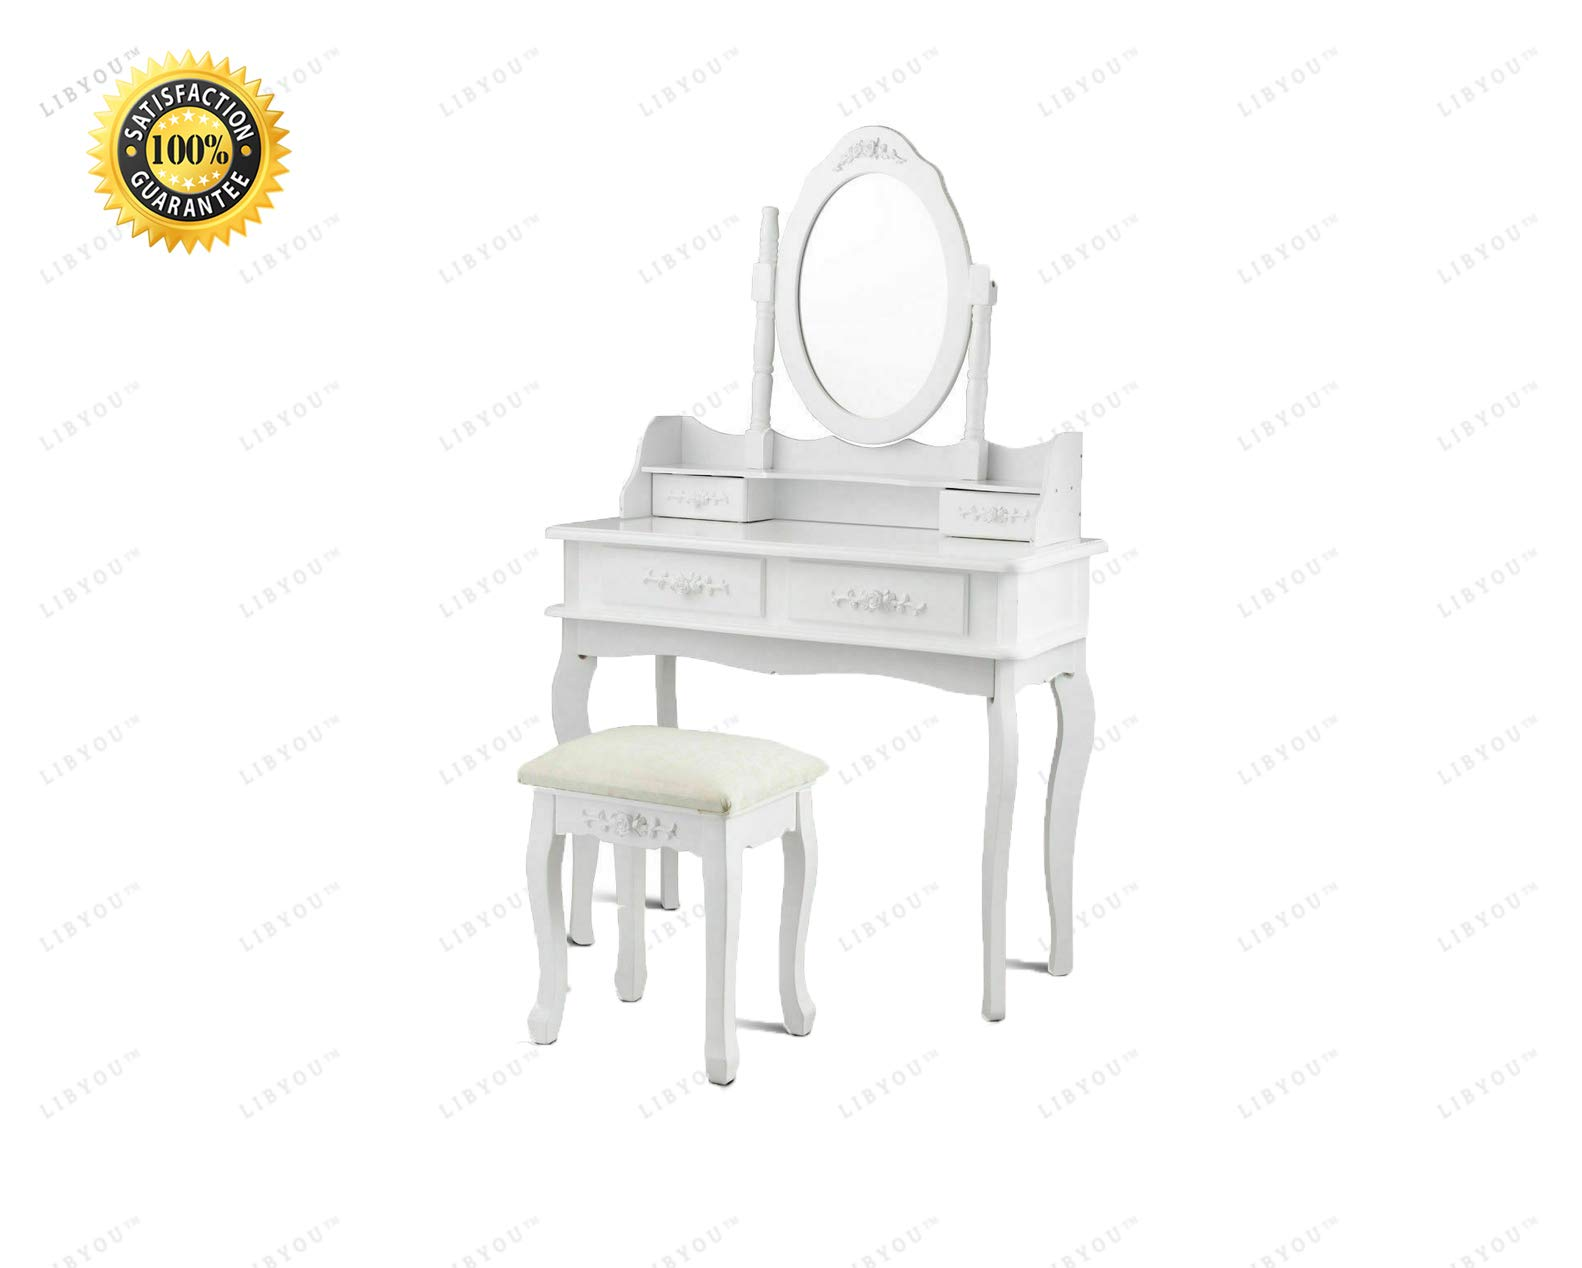 LIBYOU__Makeup Table with Mirror,Vanity Makeup Dressing Table Set, Mirror Jewelry Storage,Dressing Table Set,Mirror Vanity Table Set,Mirrored Bathroom Furniture,Stool Table Desk